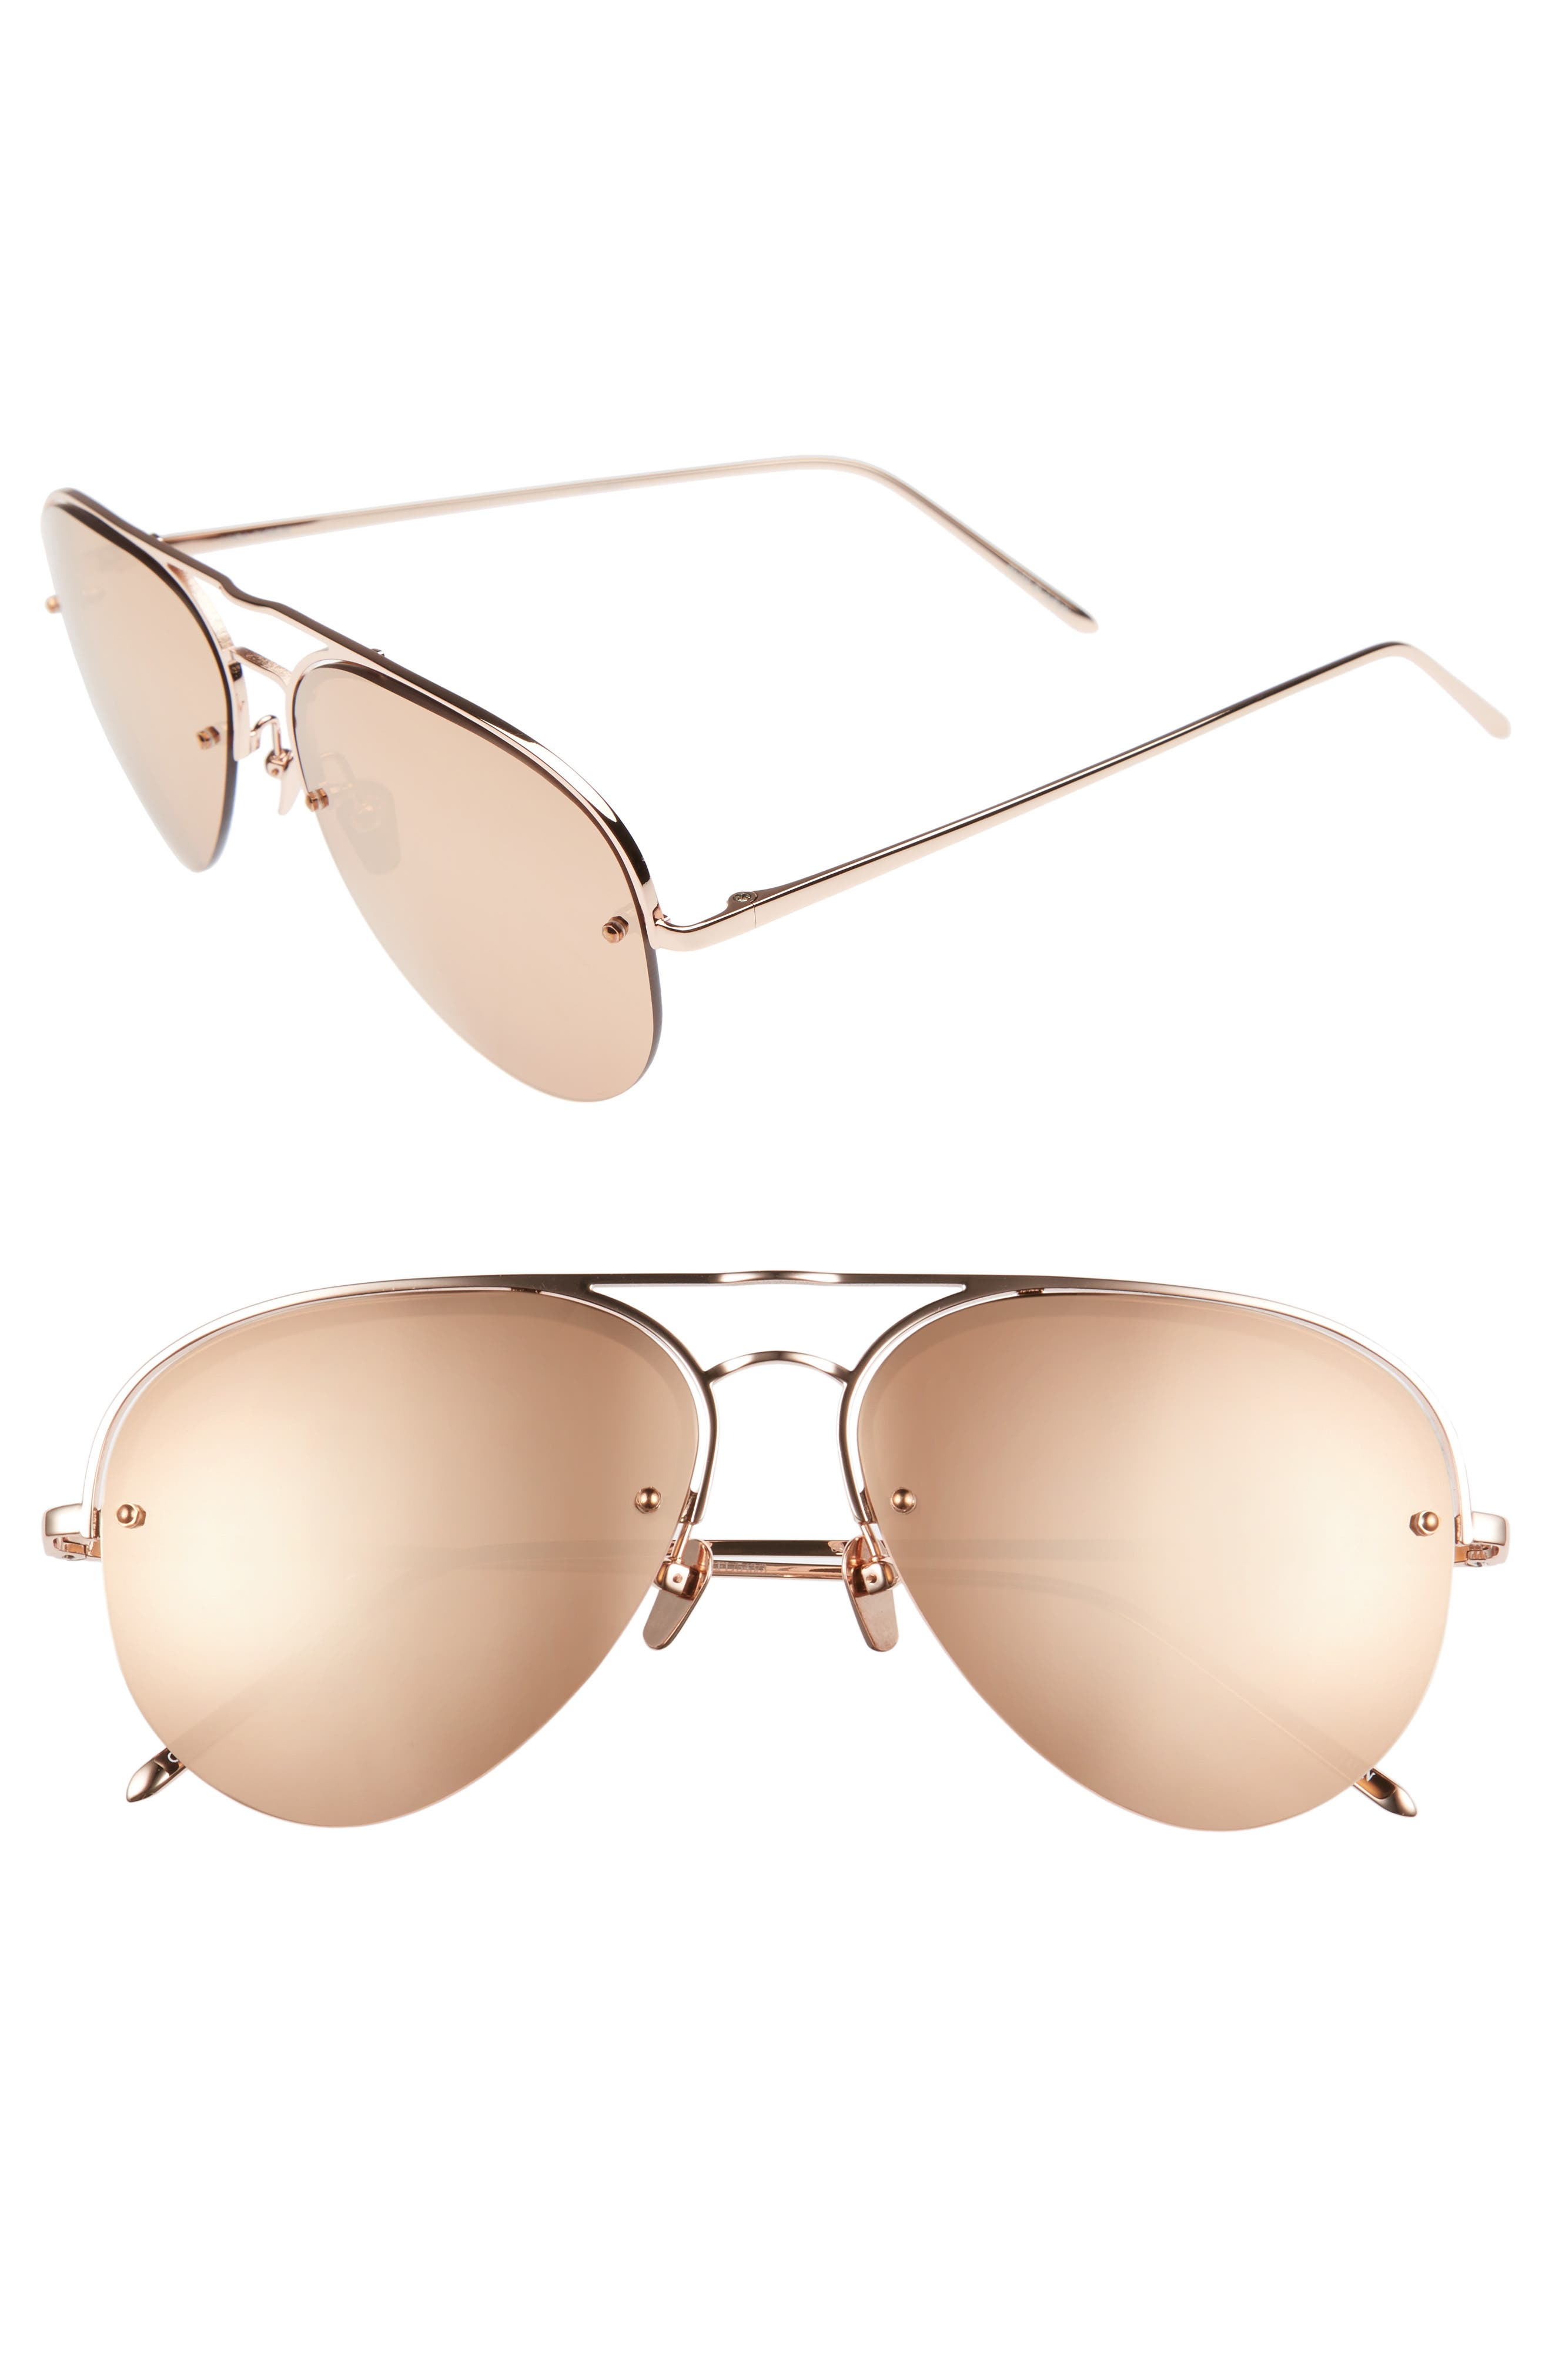 60mm Mirrored 18 Karat Gold Aviator Sunglasses,                         Main,                         color, ROSE GOLD